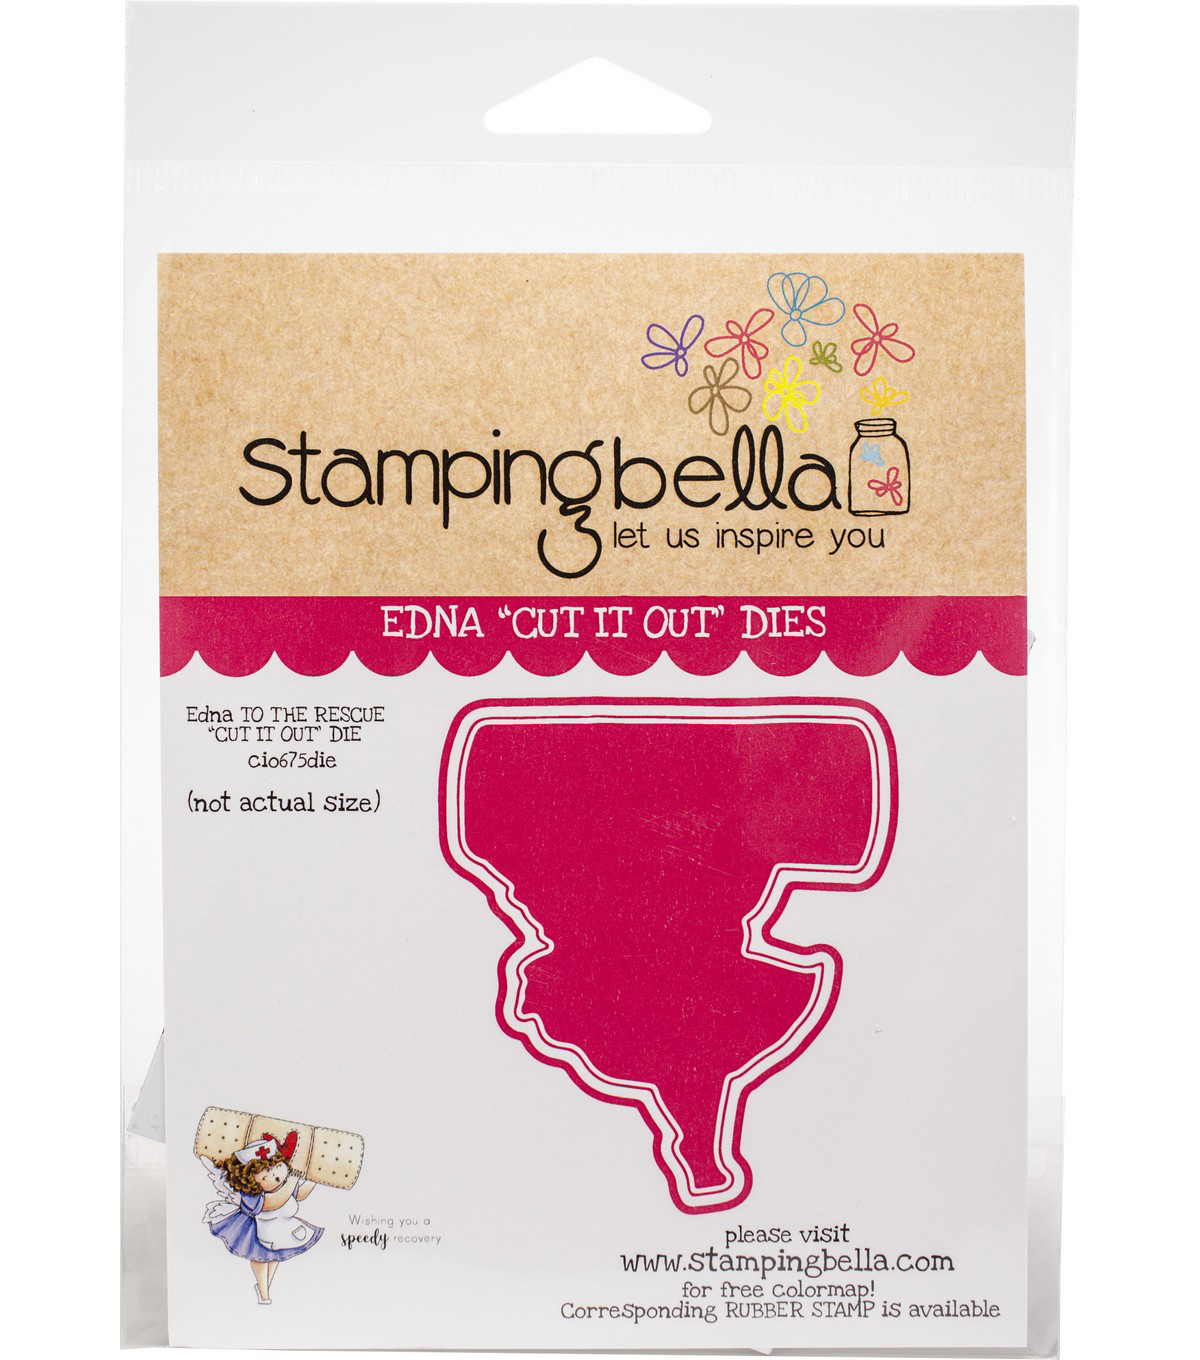 Stamping Bella Cut It Out Dies-Edna To The Rescue